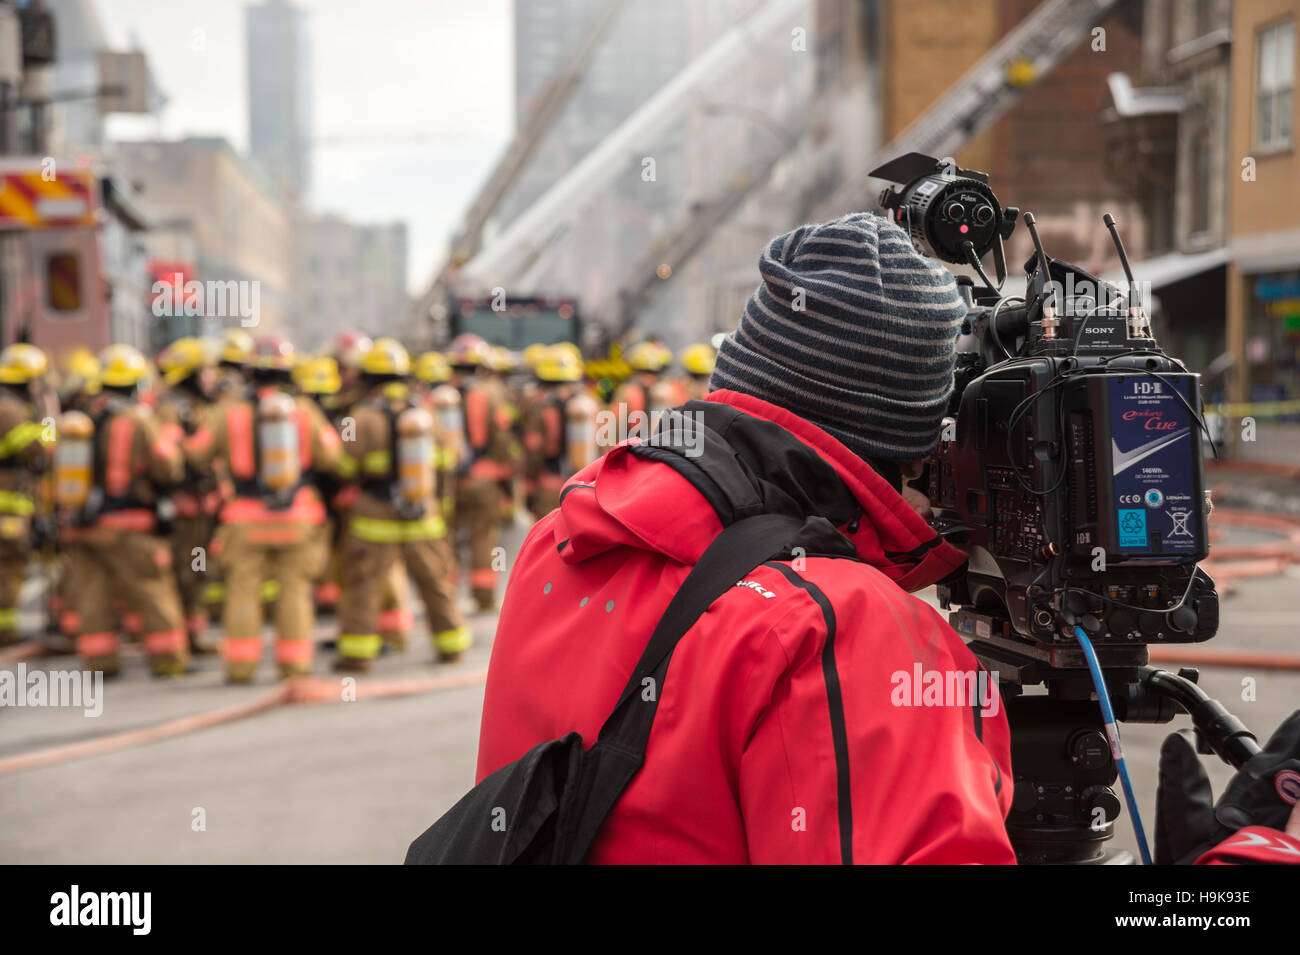 Montreal, CA - 23 Nov 2016: A cameraman is filming firefighters working on 'Cafe Amusement 68' building - Stock Image